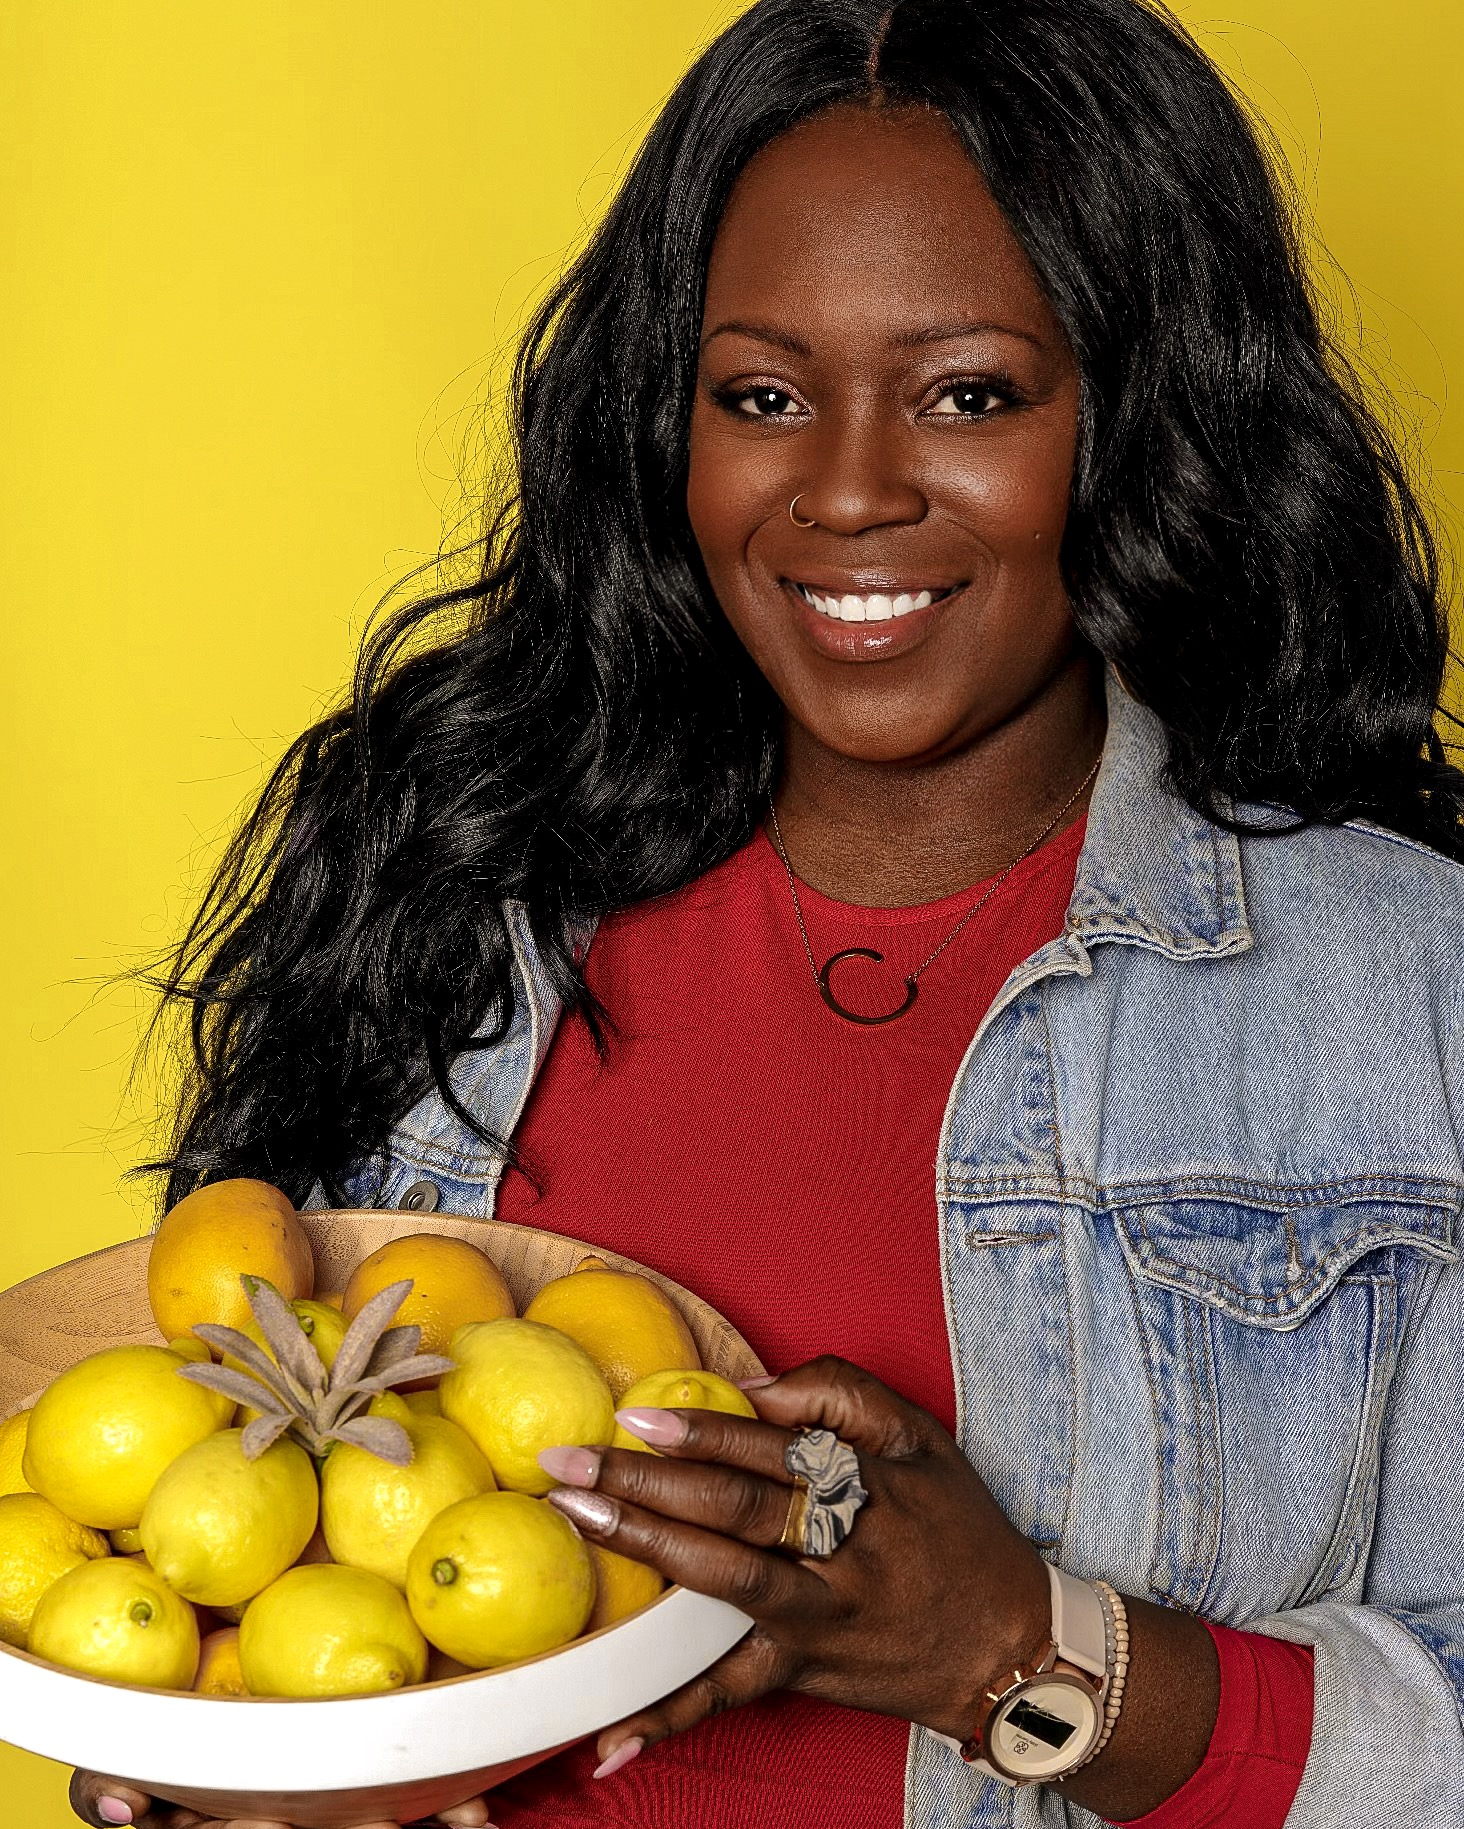 "CARLEEN GOODRIDGE - Owner of Le MONADEWhen life gives you lemons, you make Le MONADE! No one knows this quite like local entrepreneur, Carleen Goodridge. Originally from Staten Island, Carleen moved to Baltimore City determined to make her way. ""Being in business in Baltimore keeps me accountable. That accountability inspires me to continue seeking opportunities that grant me access, access I share with my community,"" shared Goodridge. Just three years later, Le MONADE is a flourishing lifestyle brand providing a wide array of tasty treats, eats and experiences. Checkout Carleen's AFRAM-inspired drinks in the video below!"